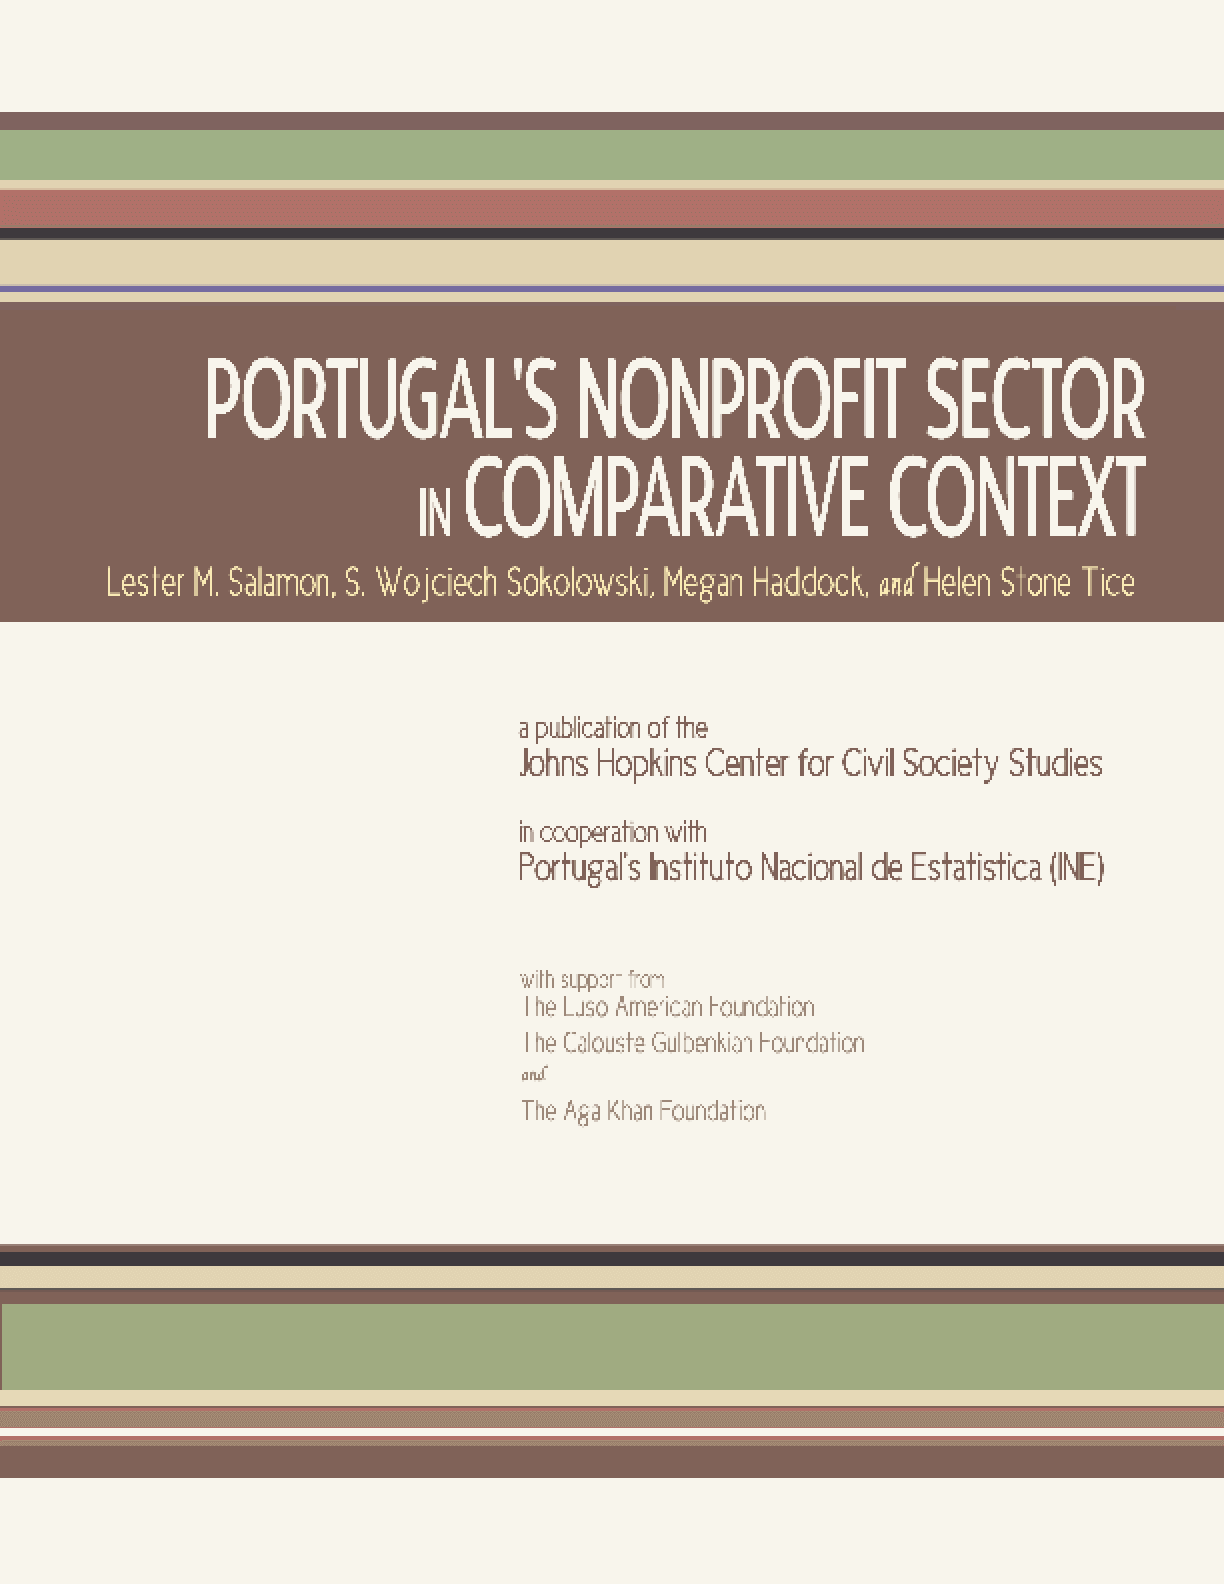 Portugal's Nonprofit Sector in Comparative Context